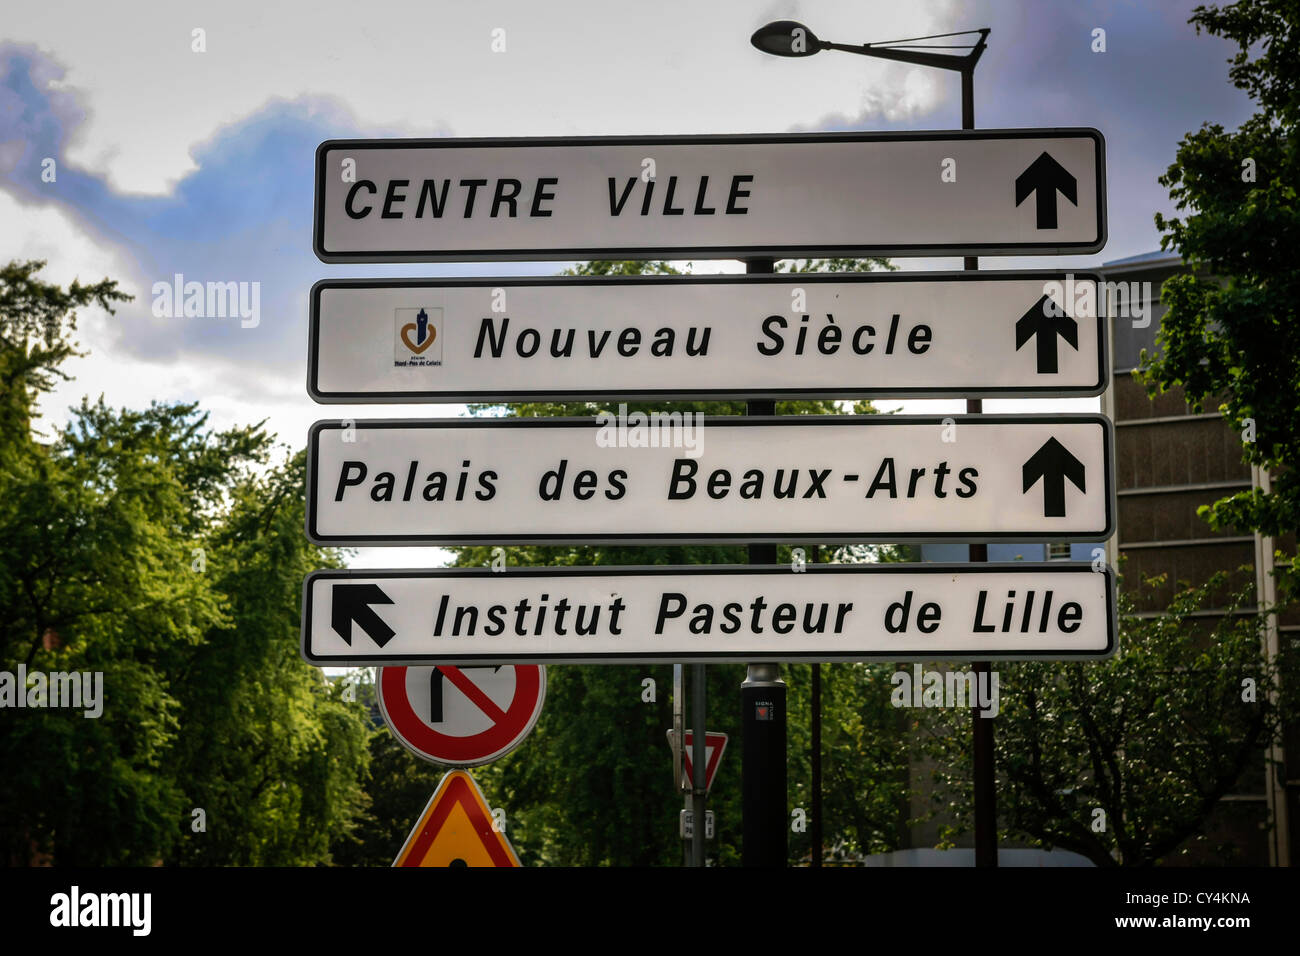 French city road sign pointing to the Institut Pasteur and Biologie in Lille - Stock Image